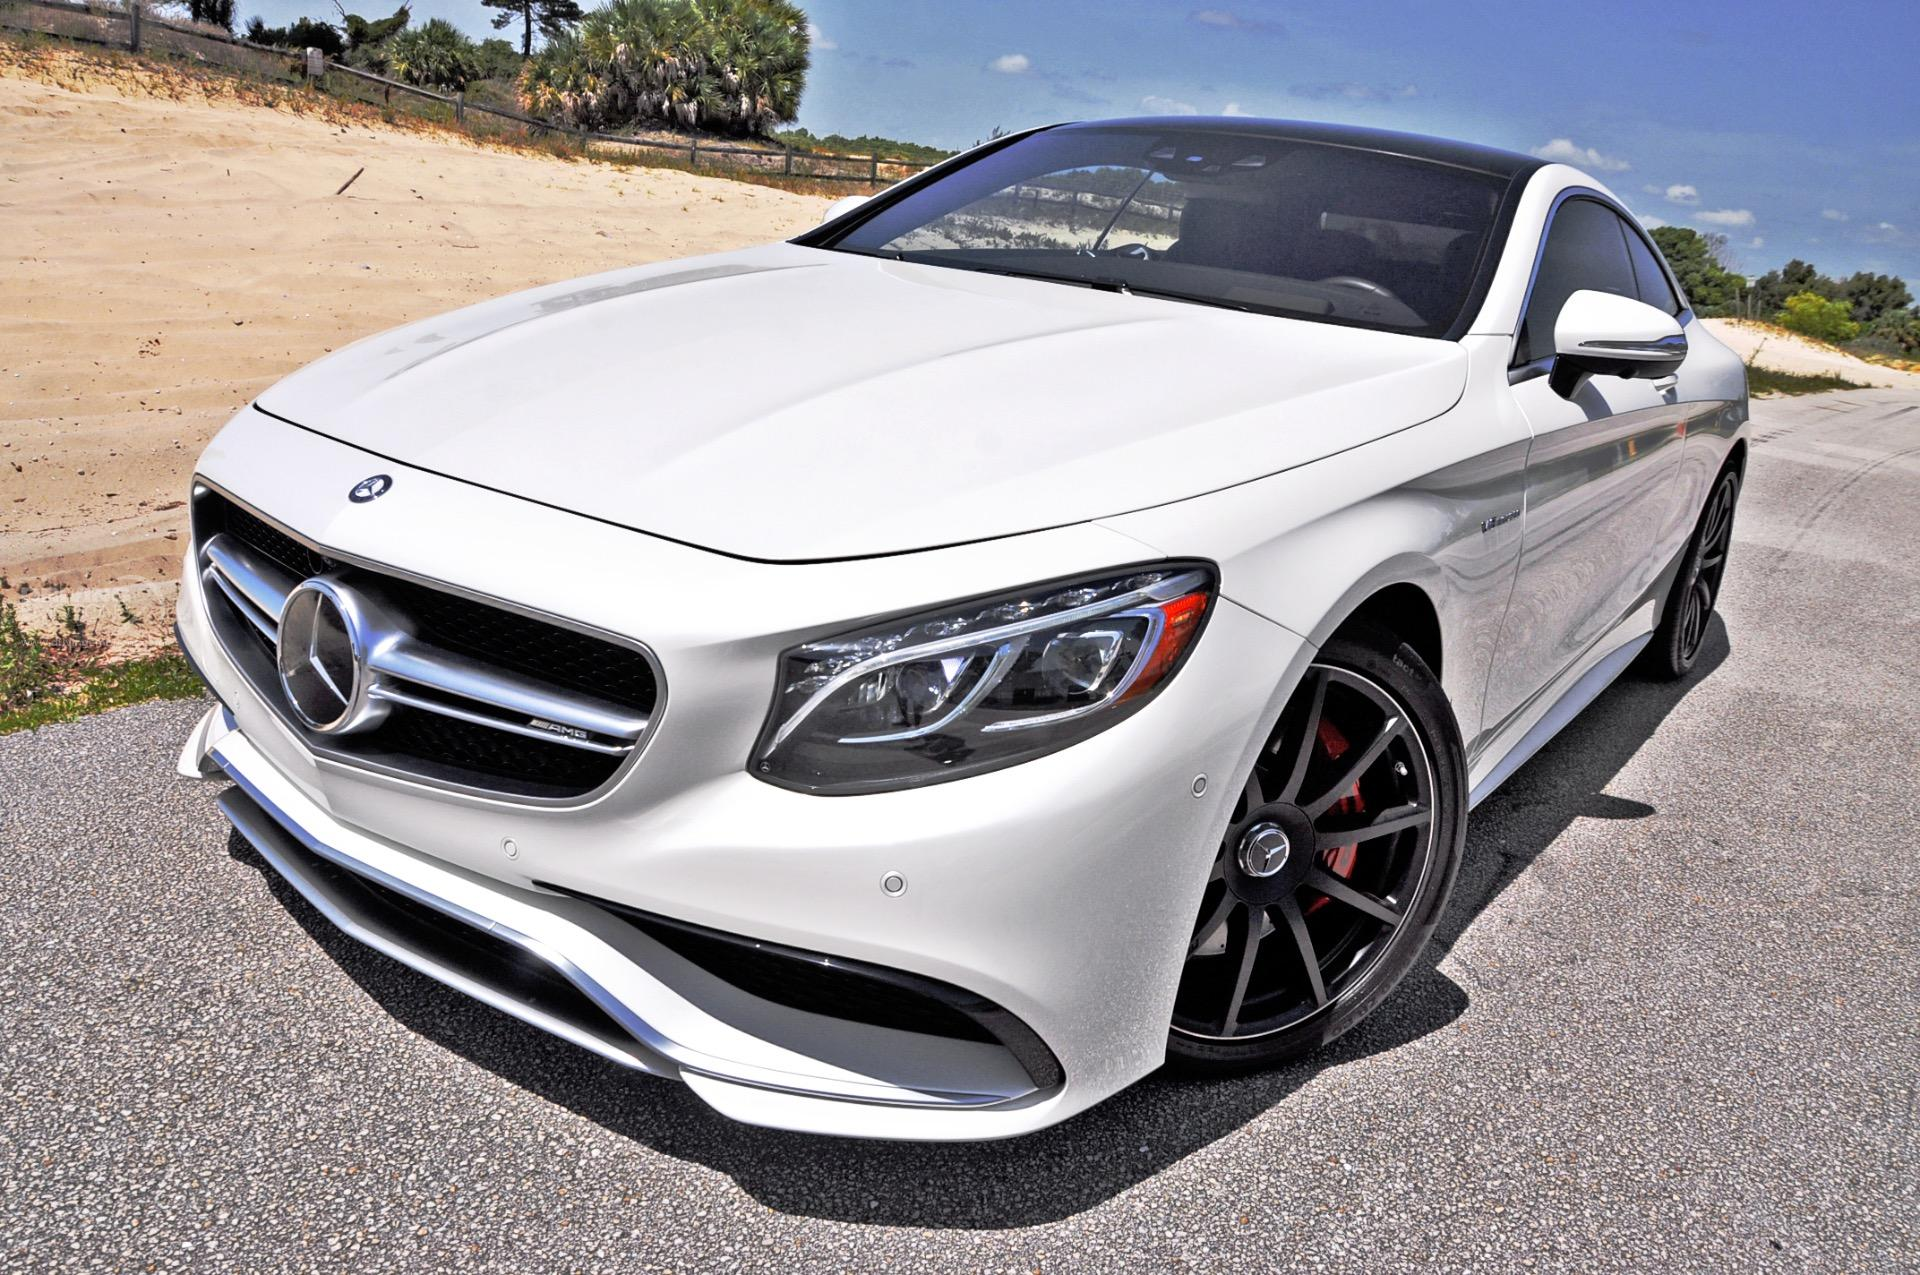 2015 mercedes benz s63 amg 4matic coupe s63 amg driving emotions palm beach fl exotic. Black Bedroom Furniture Sets. Home Design Ideas